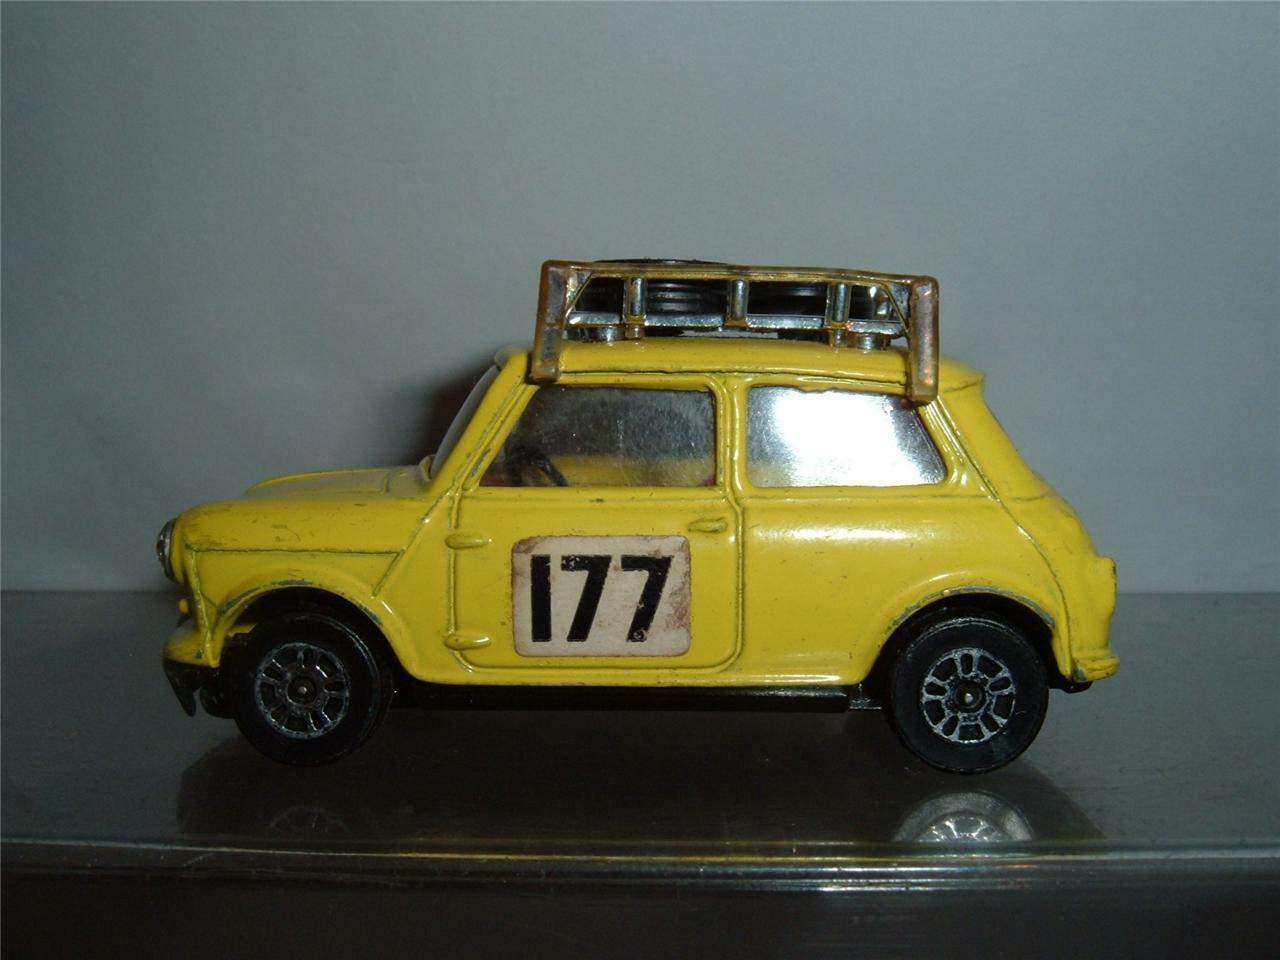 CORGI BMC MINI COOPER S 177 MONTE CARLO RALLYE CAR SCROLL DOWN FOR THE PHOTOS